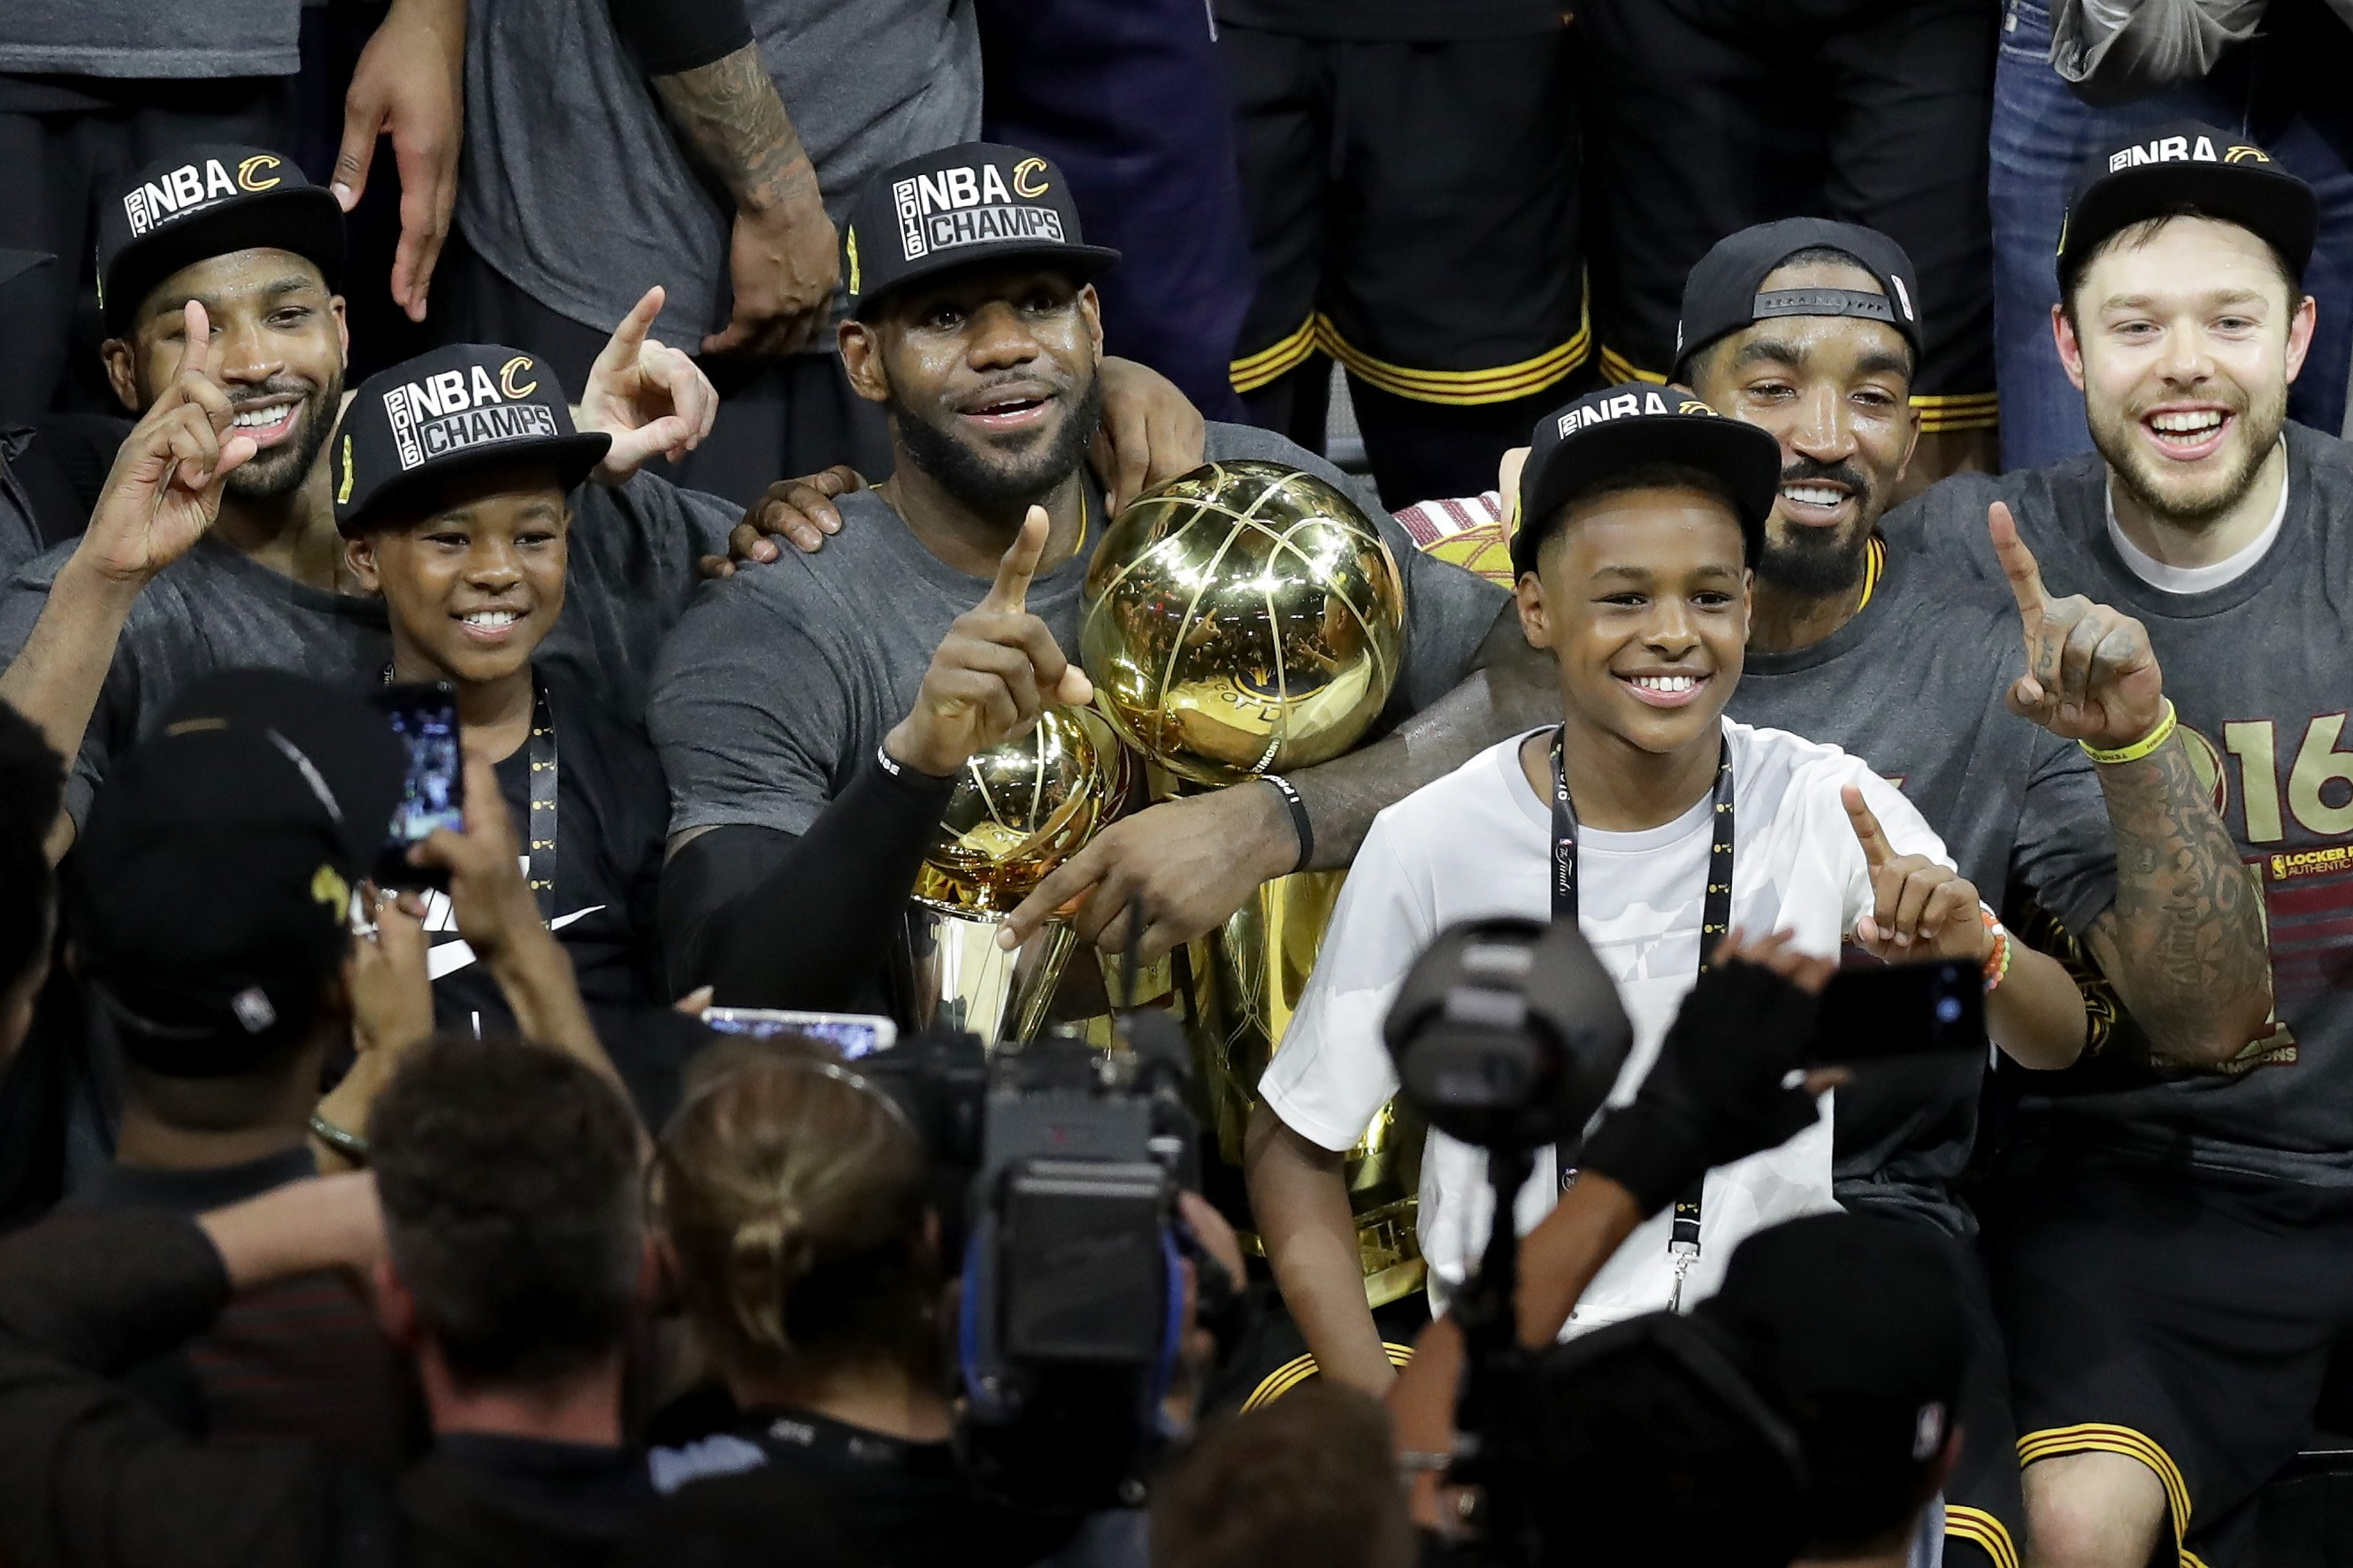 Lebron James Jr. e Bryce James - 12 e 10 anos  - Filhos do jogador de basquete Lebron James (Foto: Getty Images)